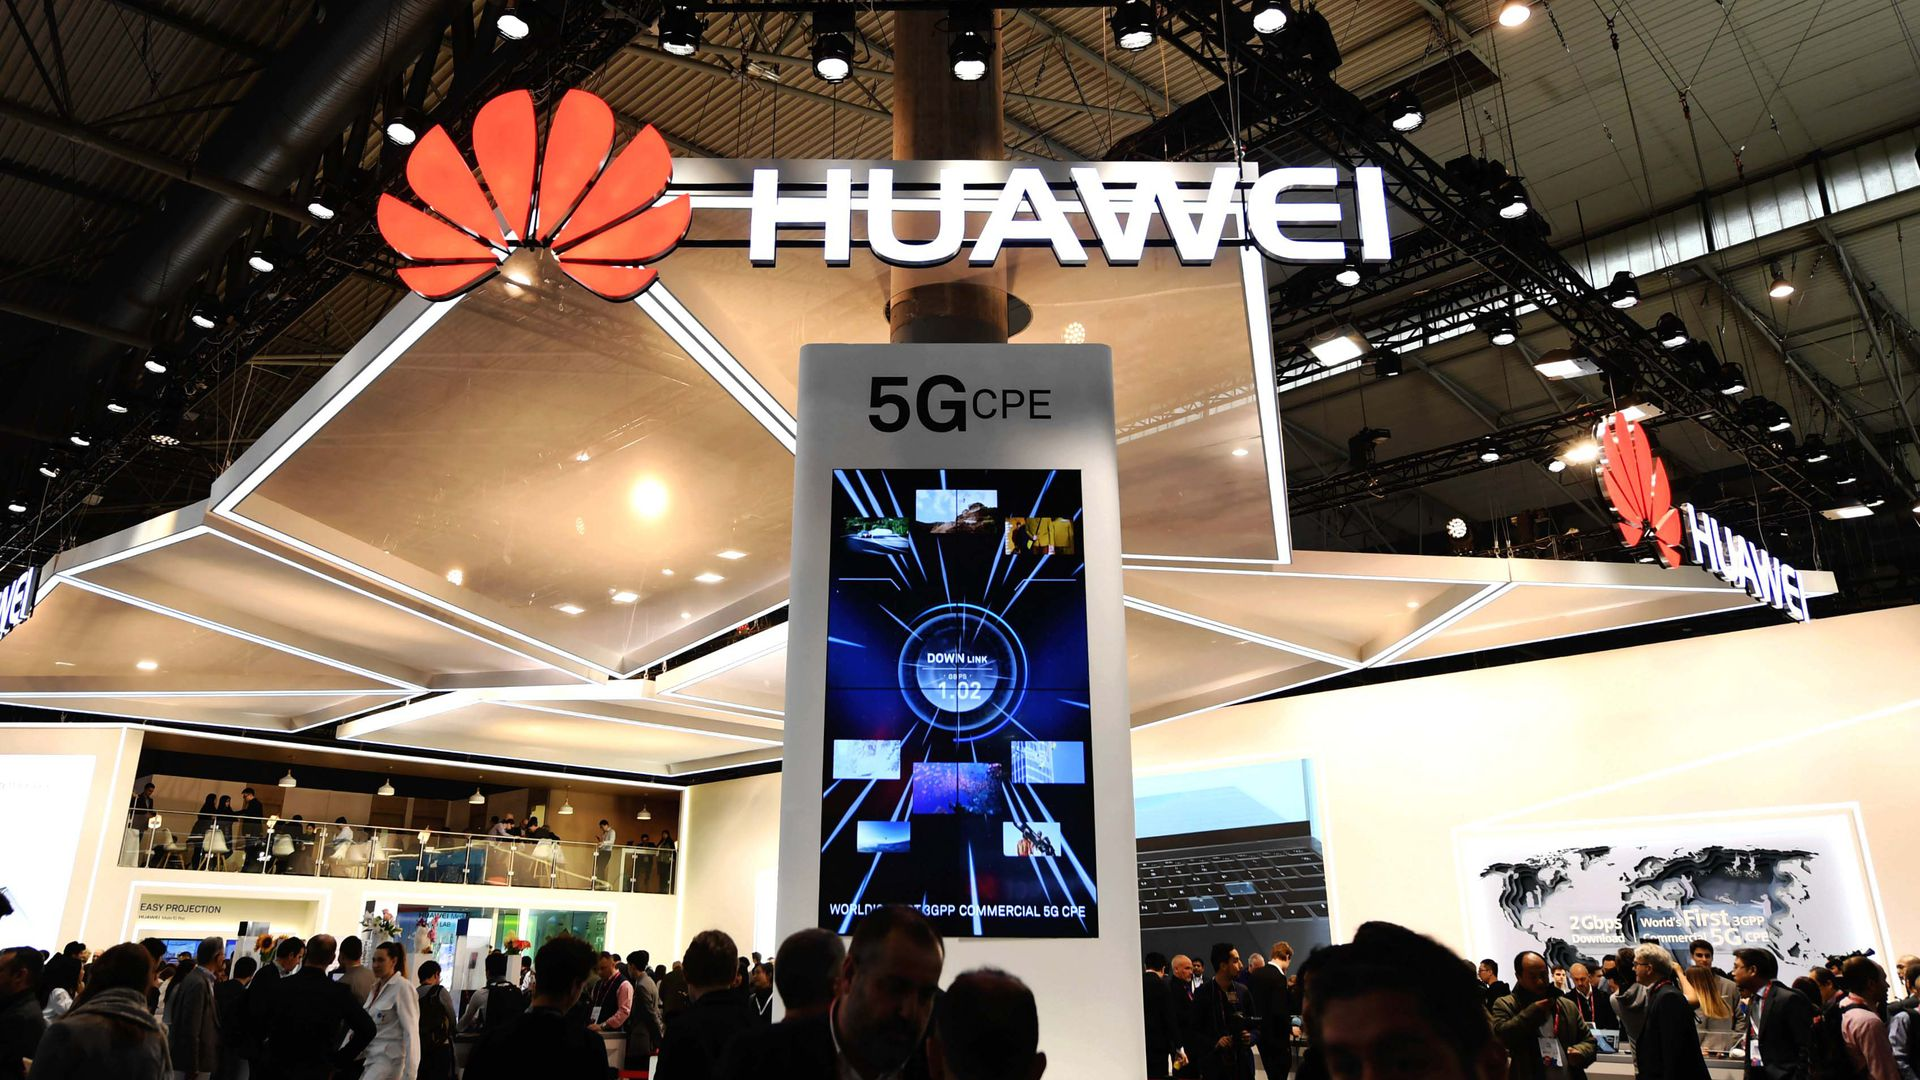 Huawei's 5G-focused booth at the 2018 Mobile World Congress in Barcelona, Spain. Photo: Xinhua/Guo Qiuda via Getty Images.